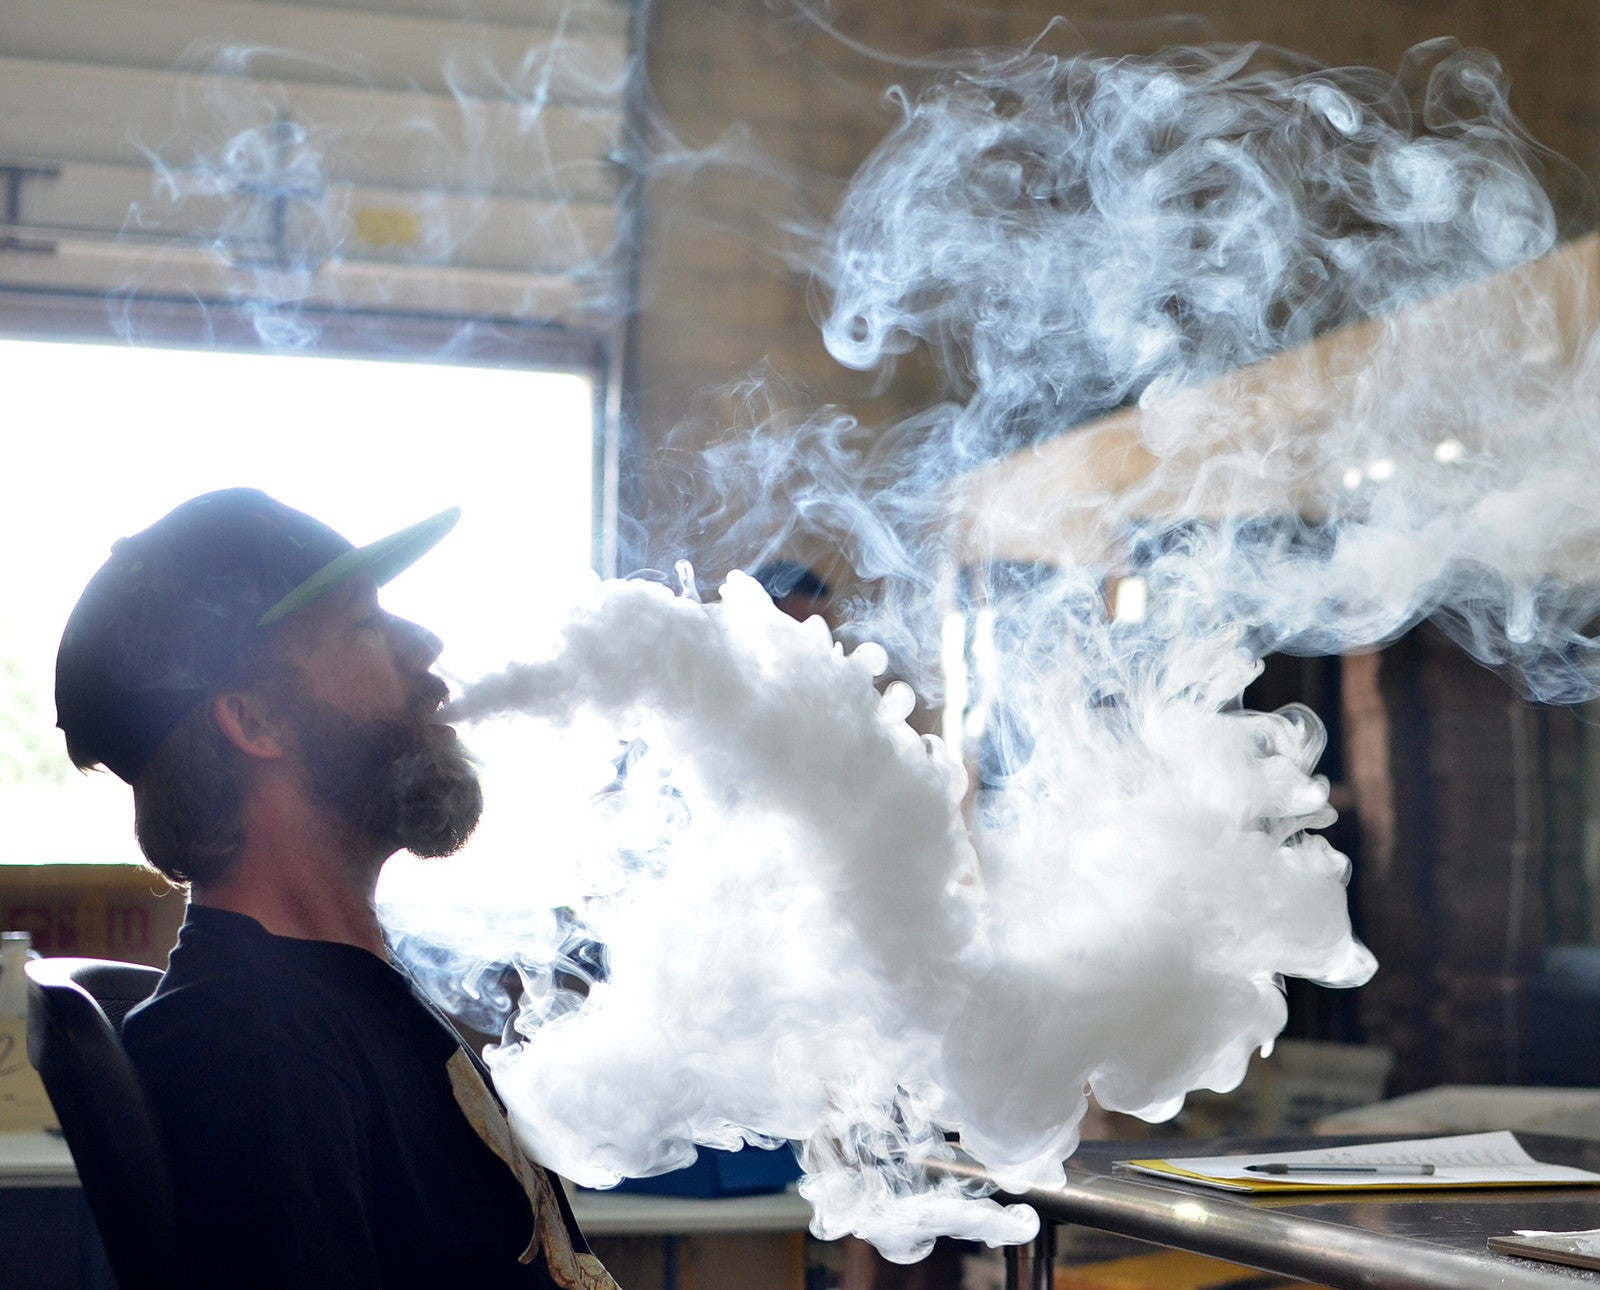 New study shows trace metals in e-cig vapor no different that ambient air